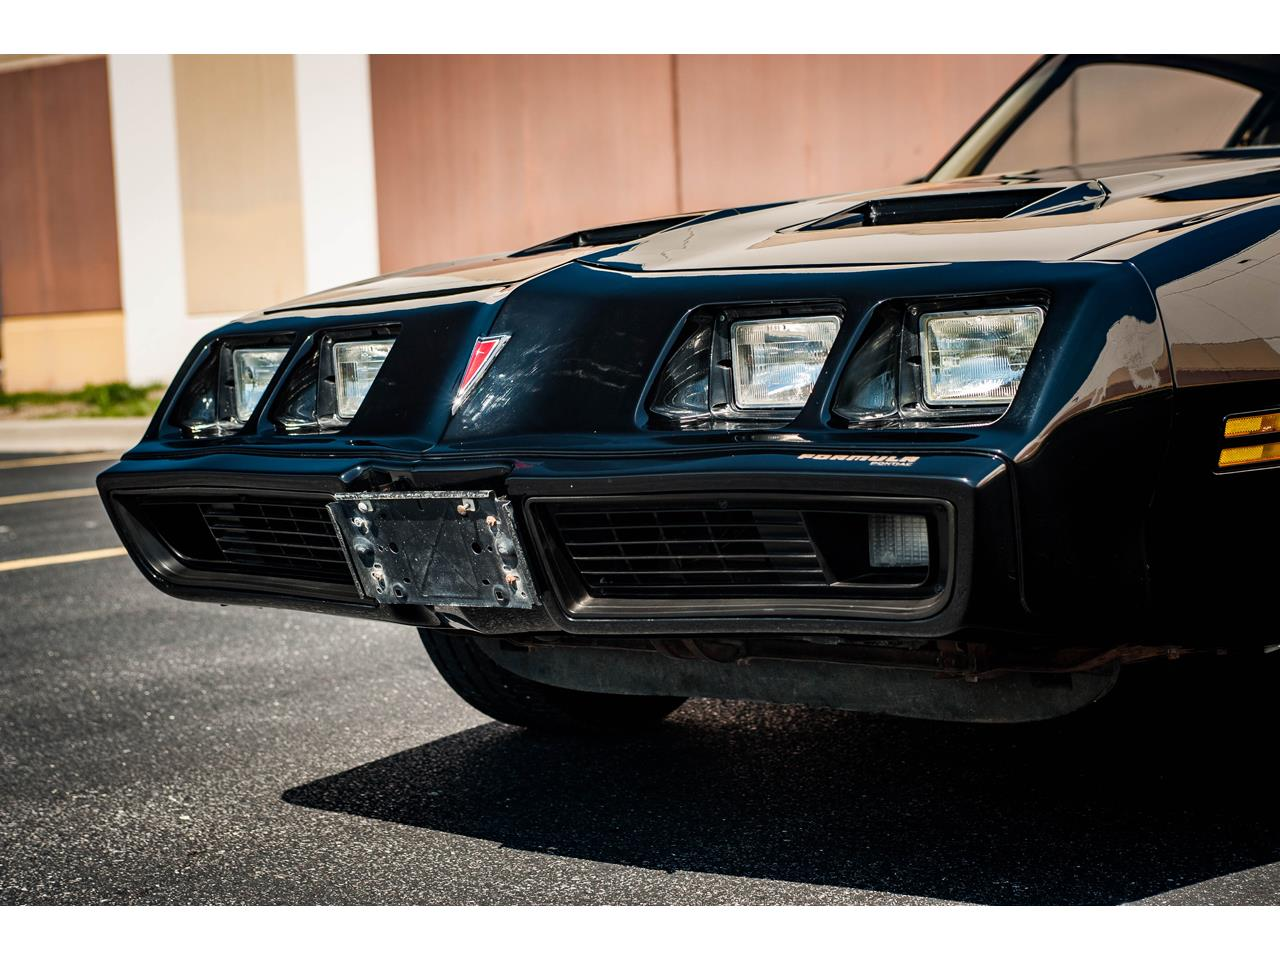 Large Picture of '79 Pontiac Firebird located in O'Fallon Illinois Offered by Gateway Classic Cars - St. Louis - QB8A